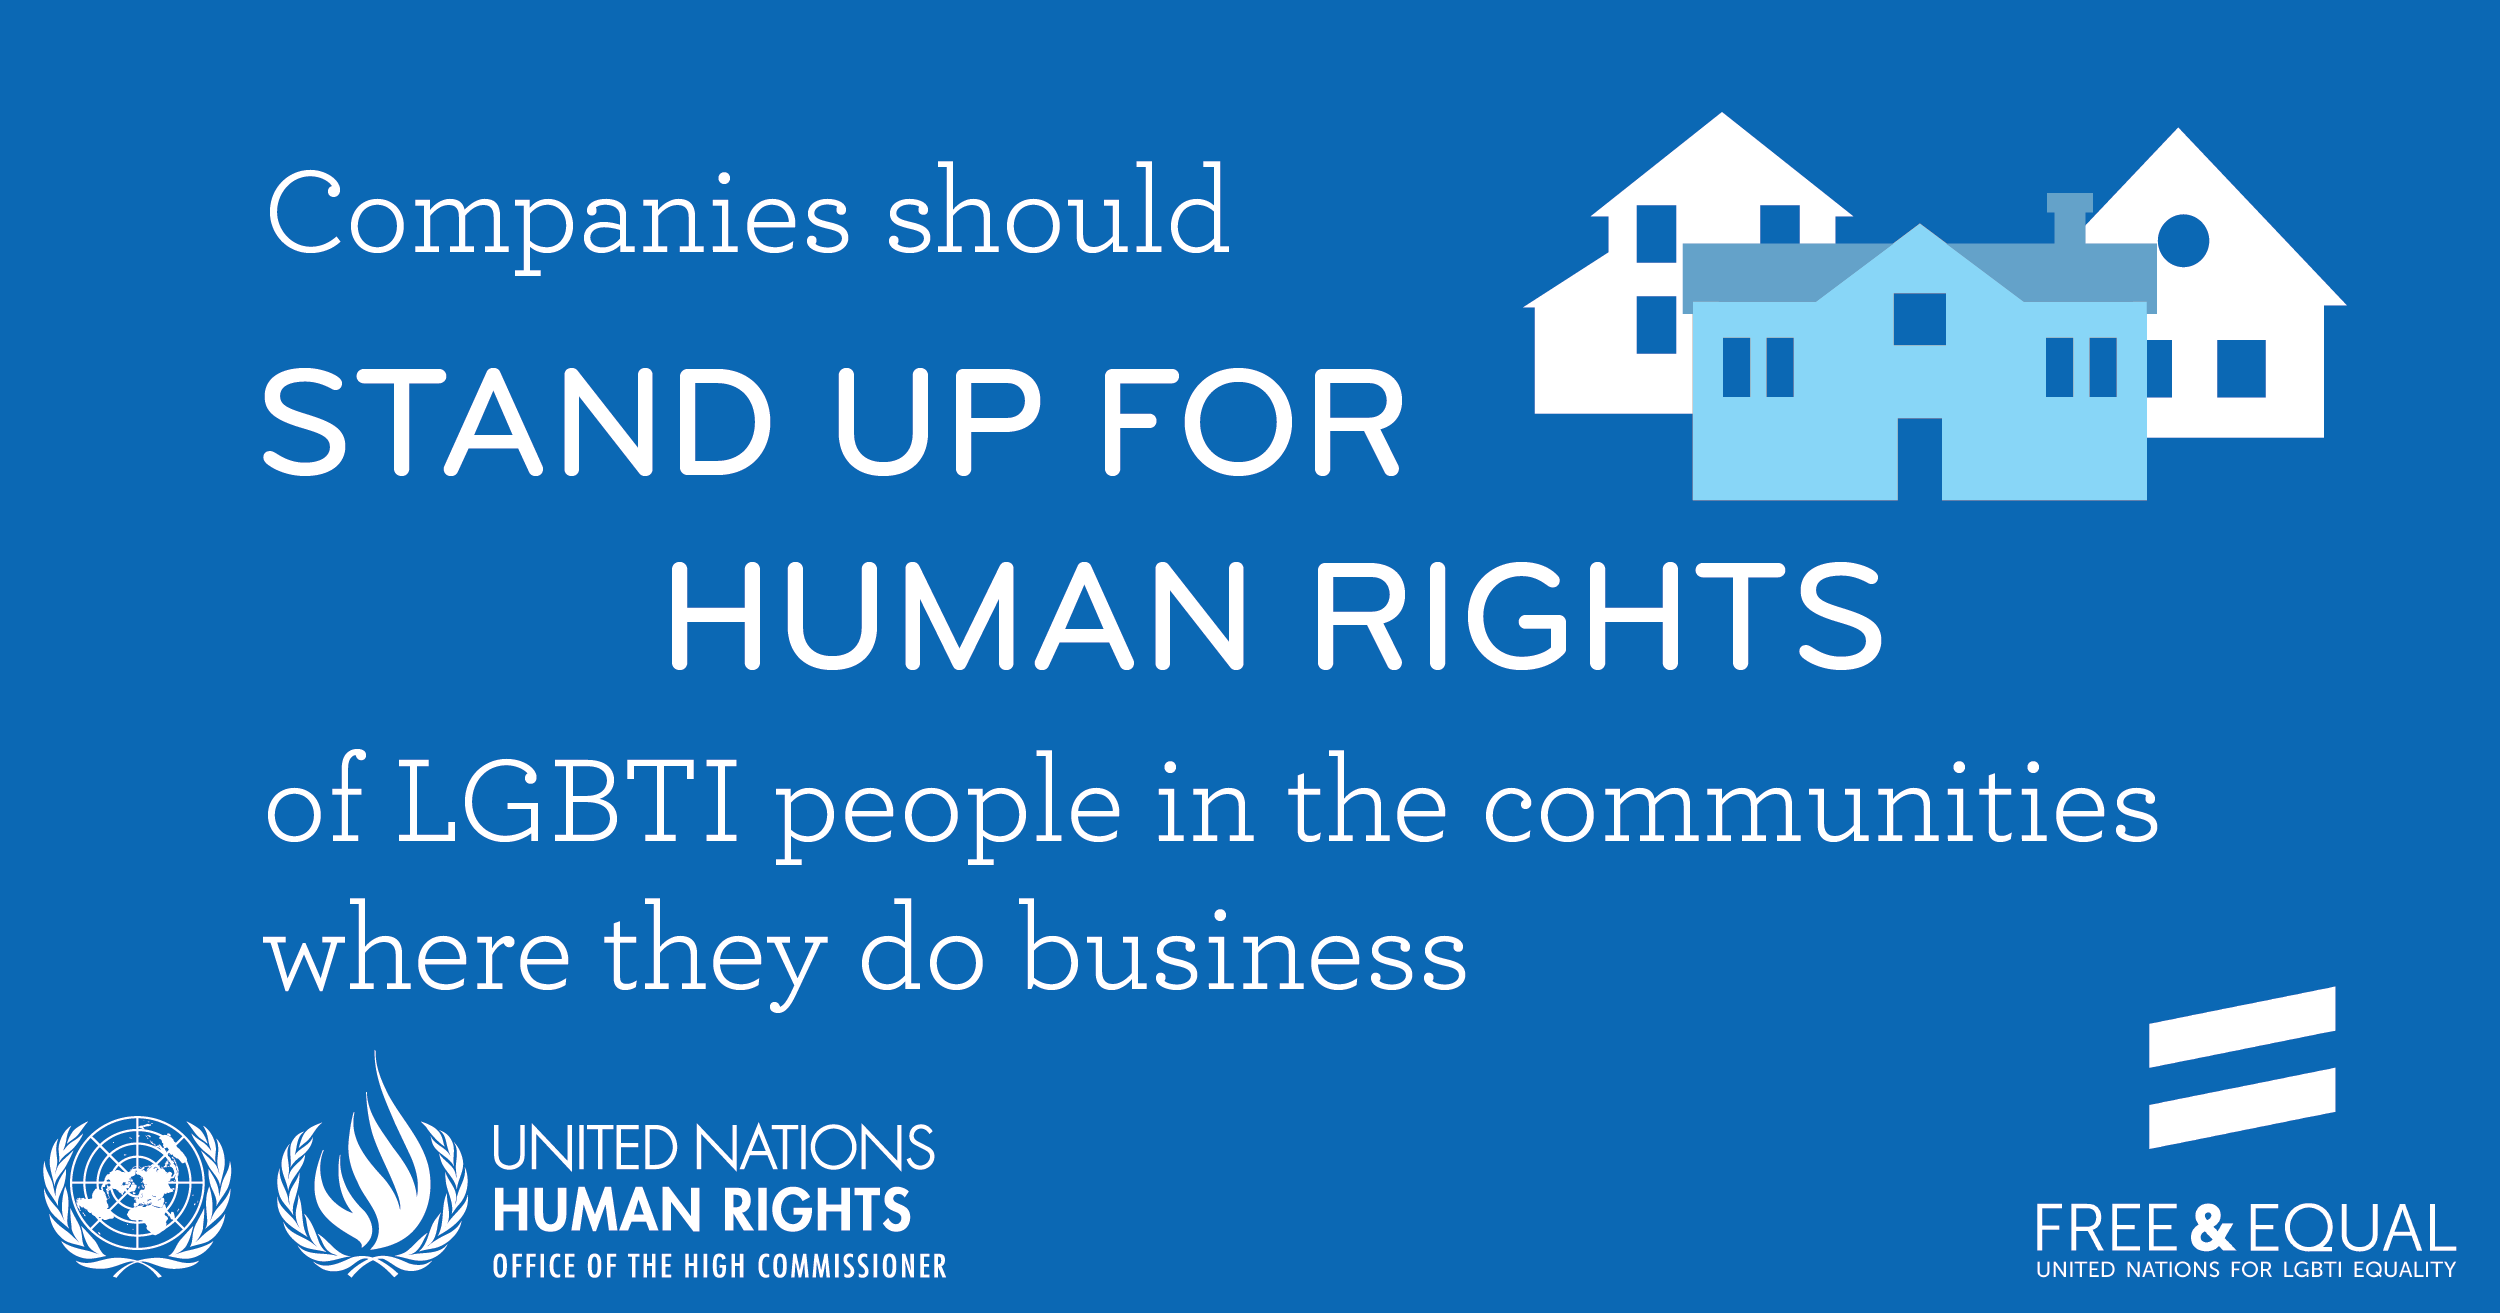 Companies should stand up for the human rights of LGBTI people in the communities where they do business.